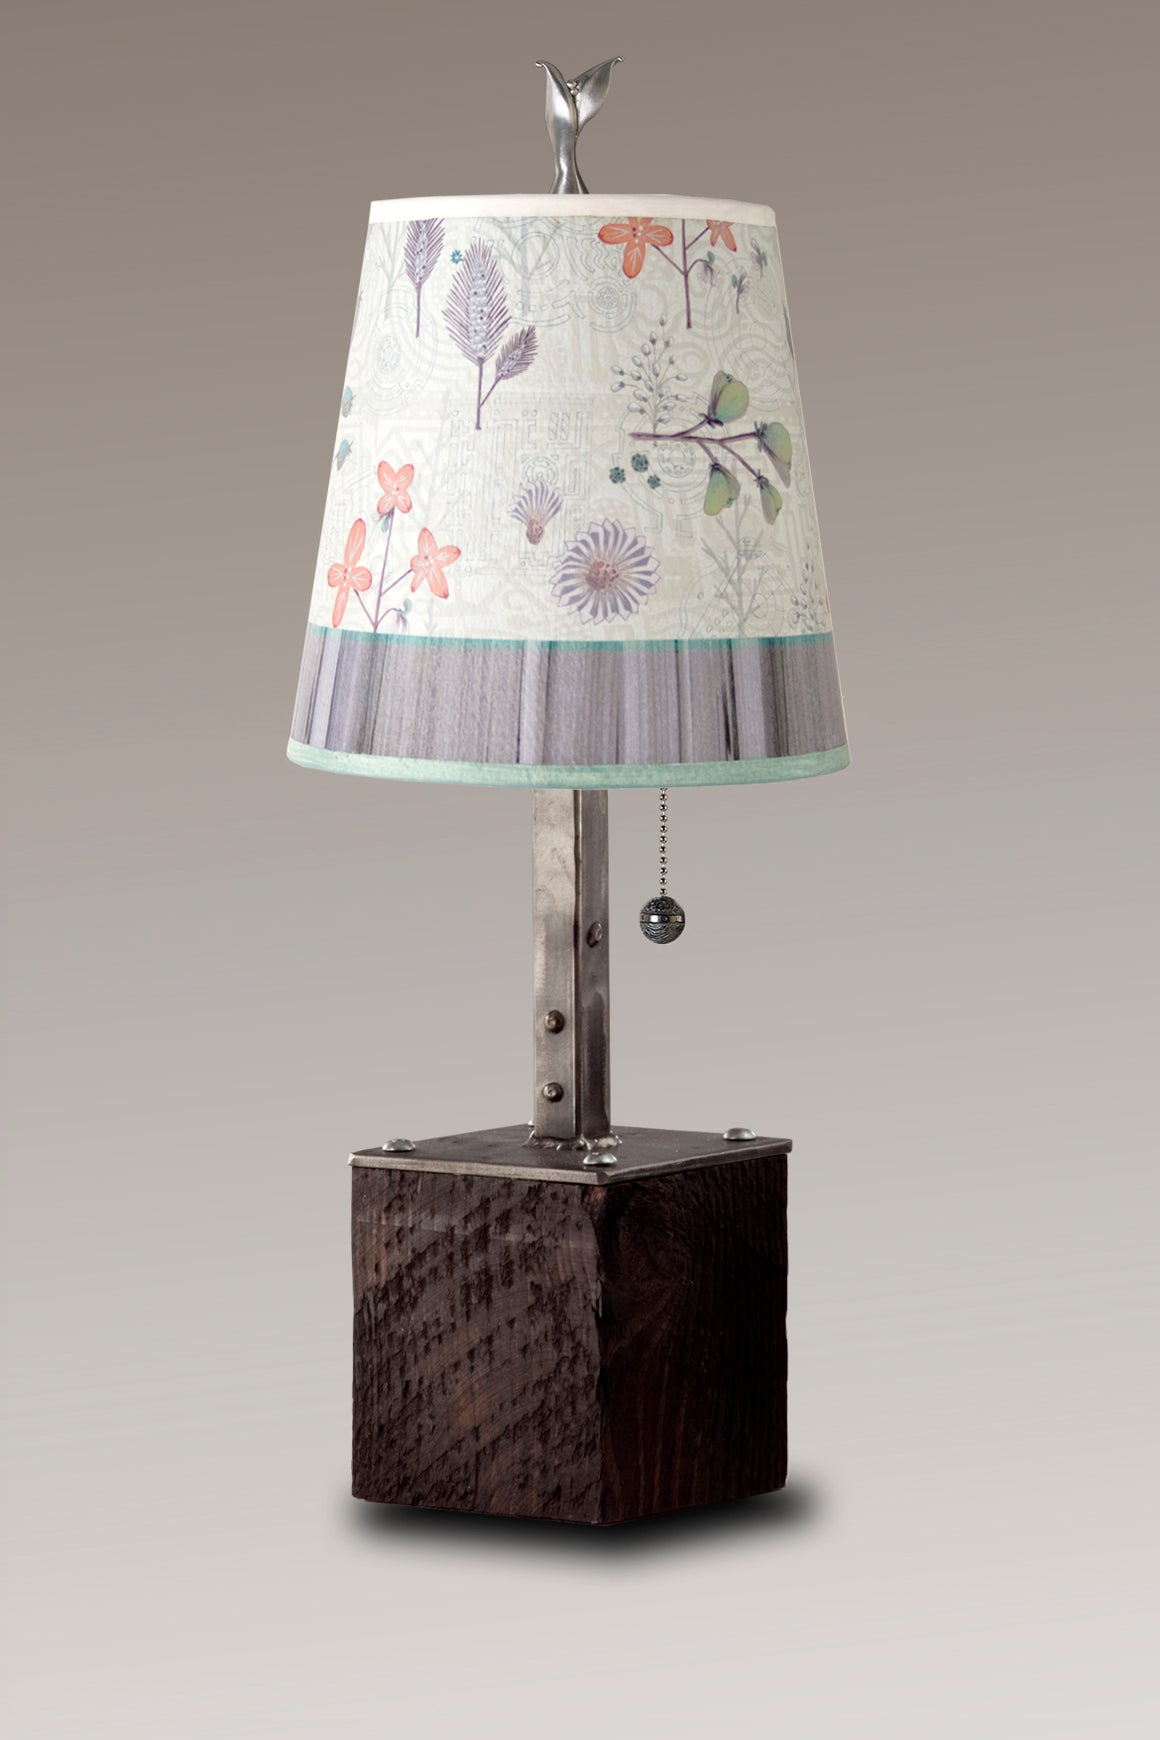 Steel Table Lamp on Reclaimed Wood with Small Drum Shade in Flora & Maze